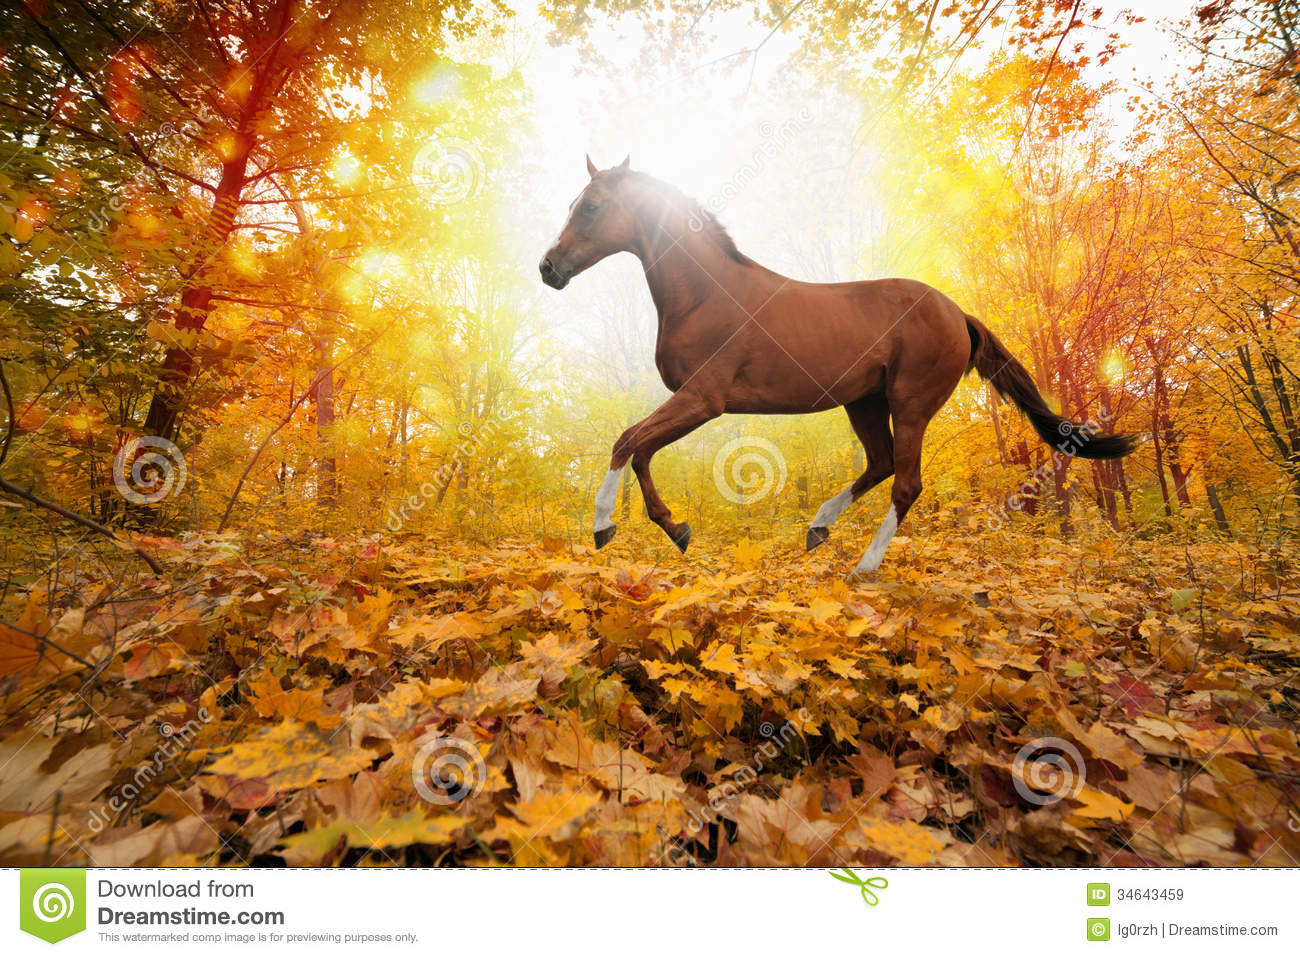 horse in fall park royalty free stock images image 34643459 clip art horses black and white clip art horses black and white